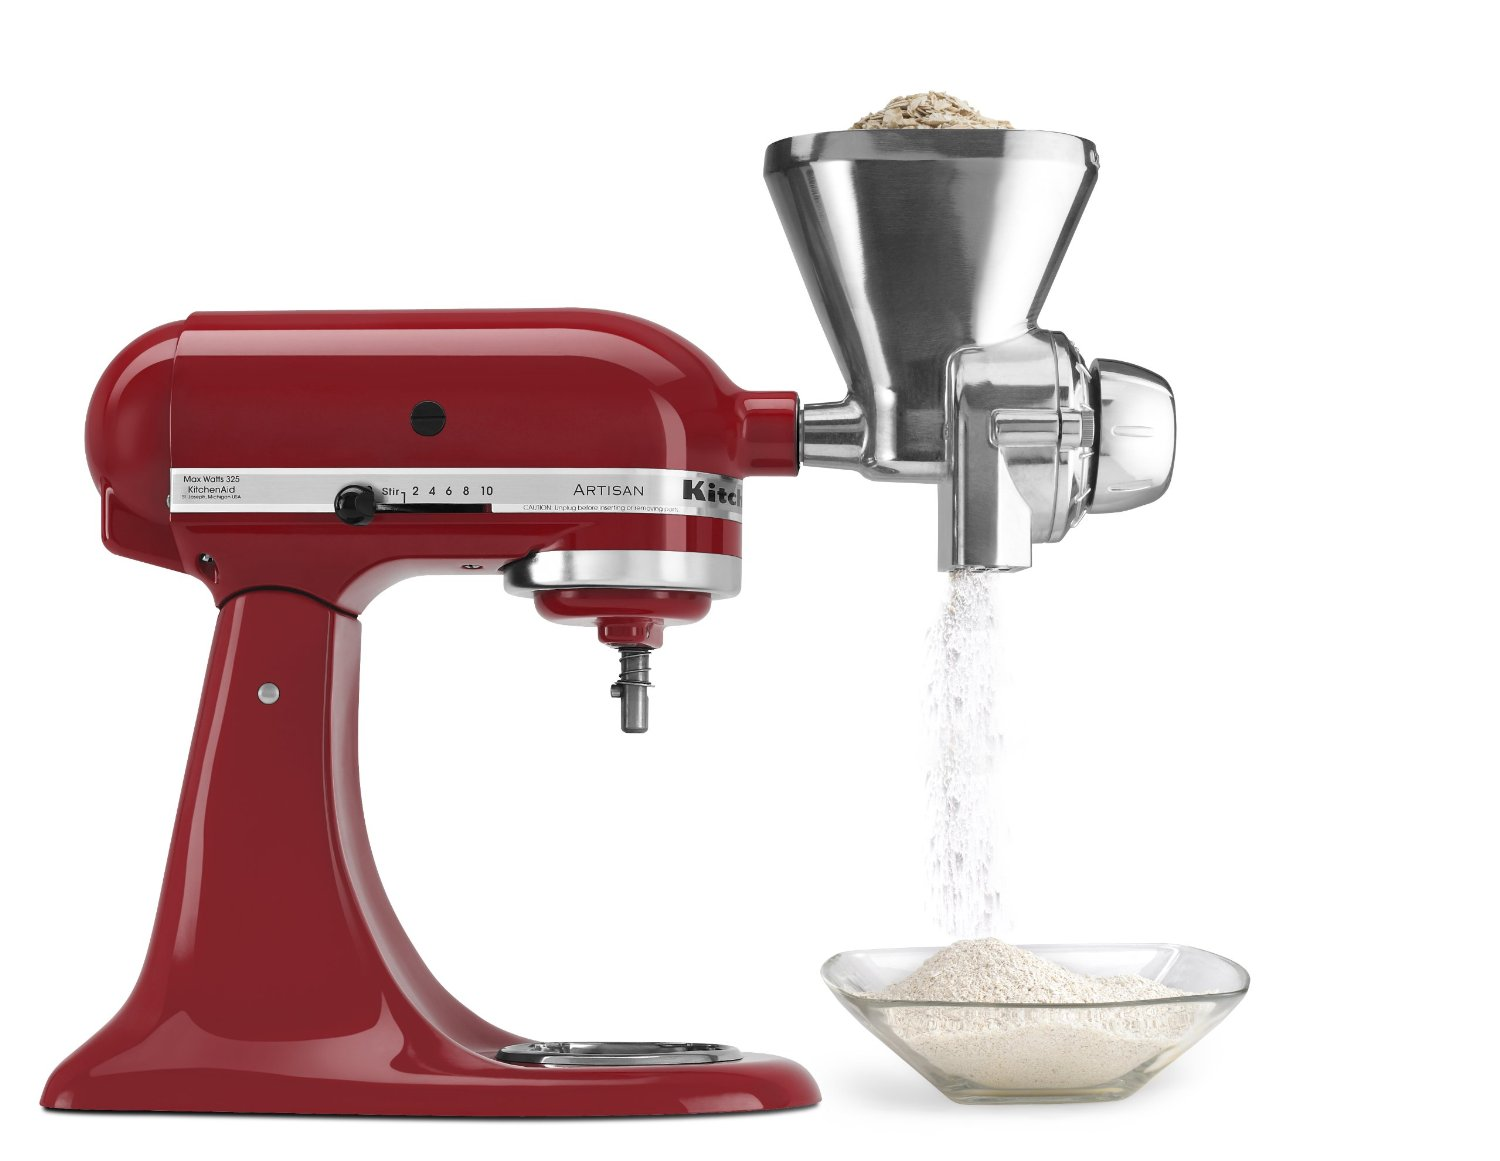 kitchen aid mixers on sale 24 stools for the kitchenaid kgm stand mixer grain mill attachment